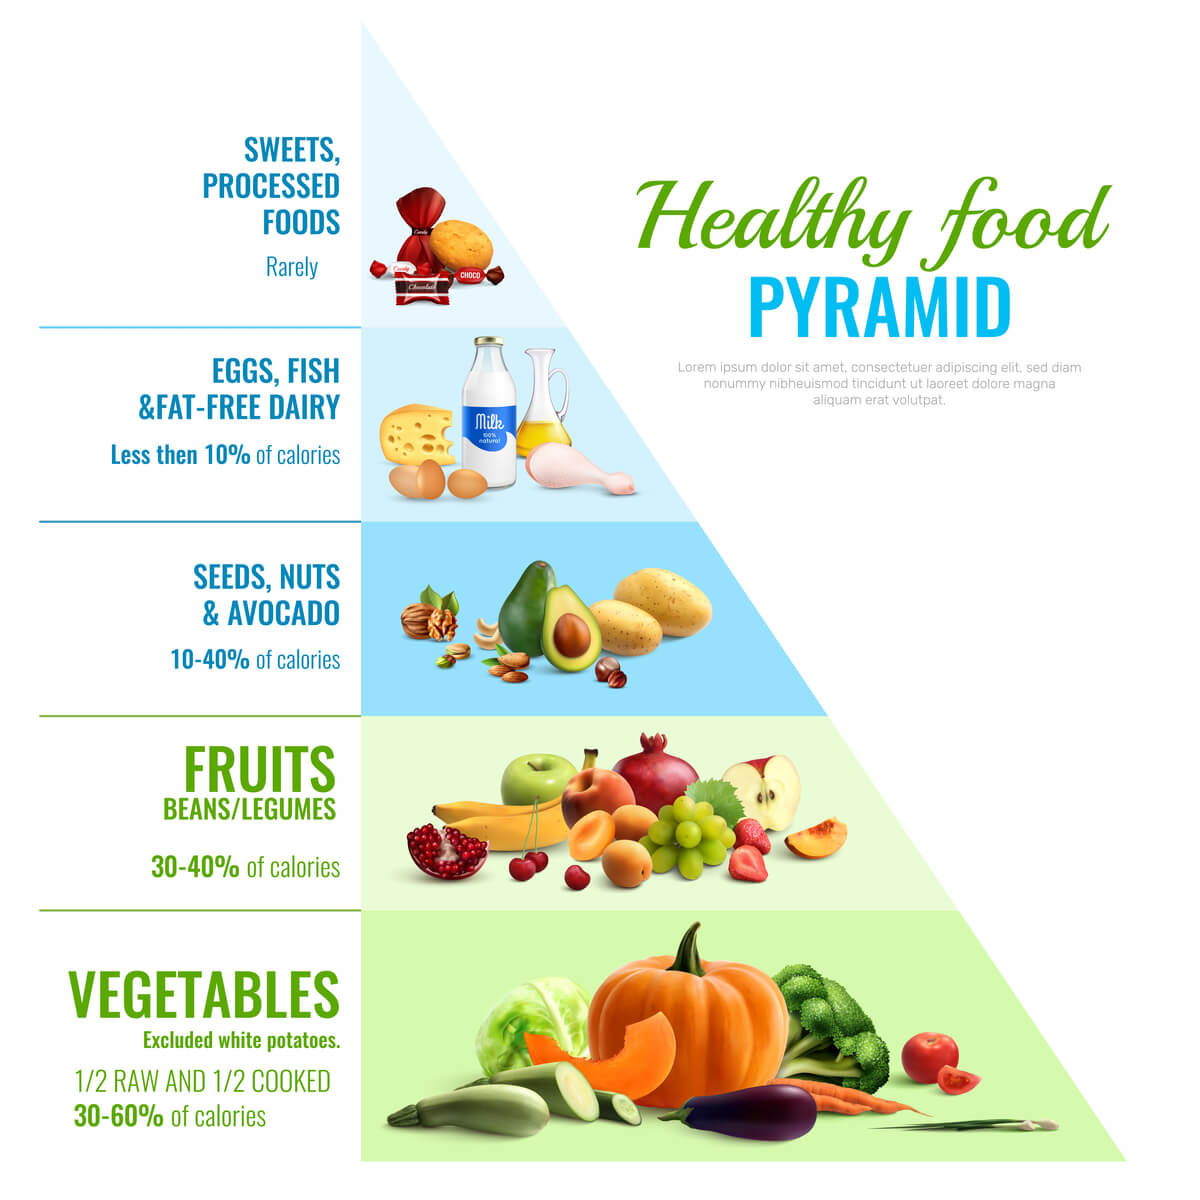 Healthy Nutrition - Healthy eating pyramid realistic infographic-Montcalm